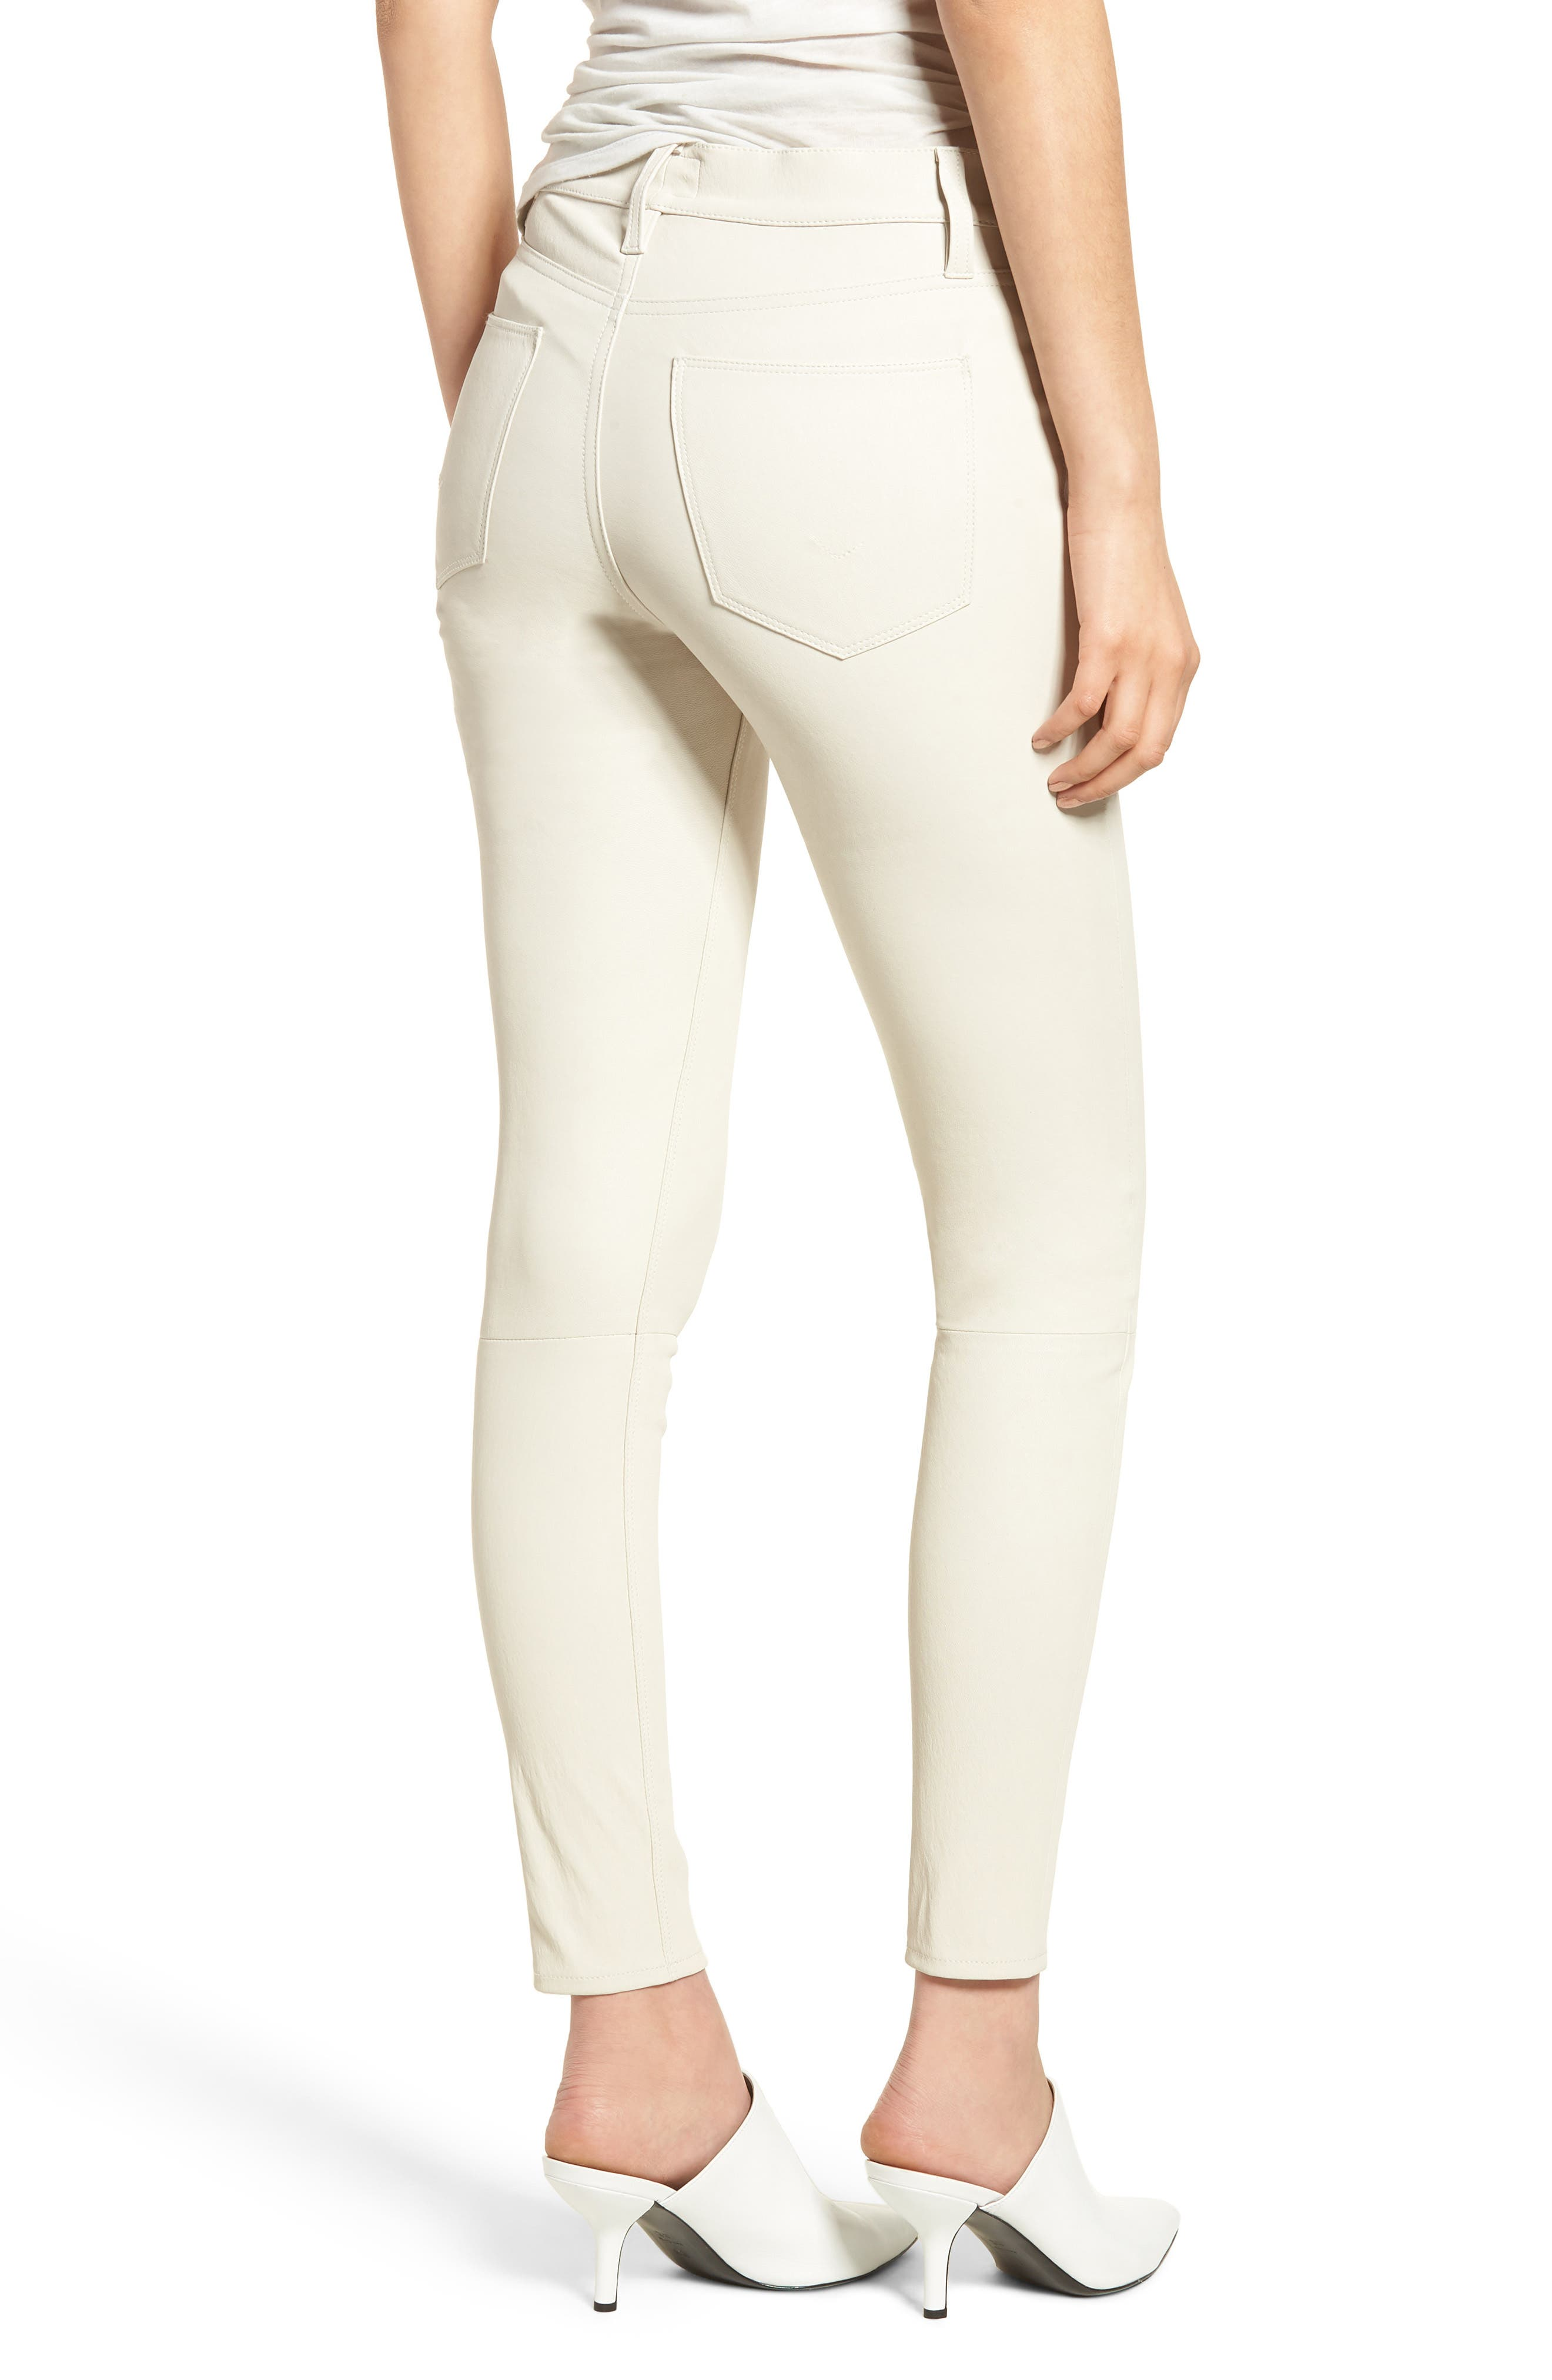 Barbara High Waist Super Skinny Leather Jeans,                             Alternate thumbnail 2, color,                             Pale White